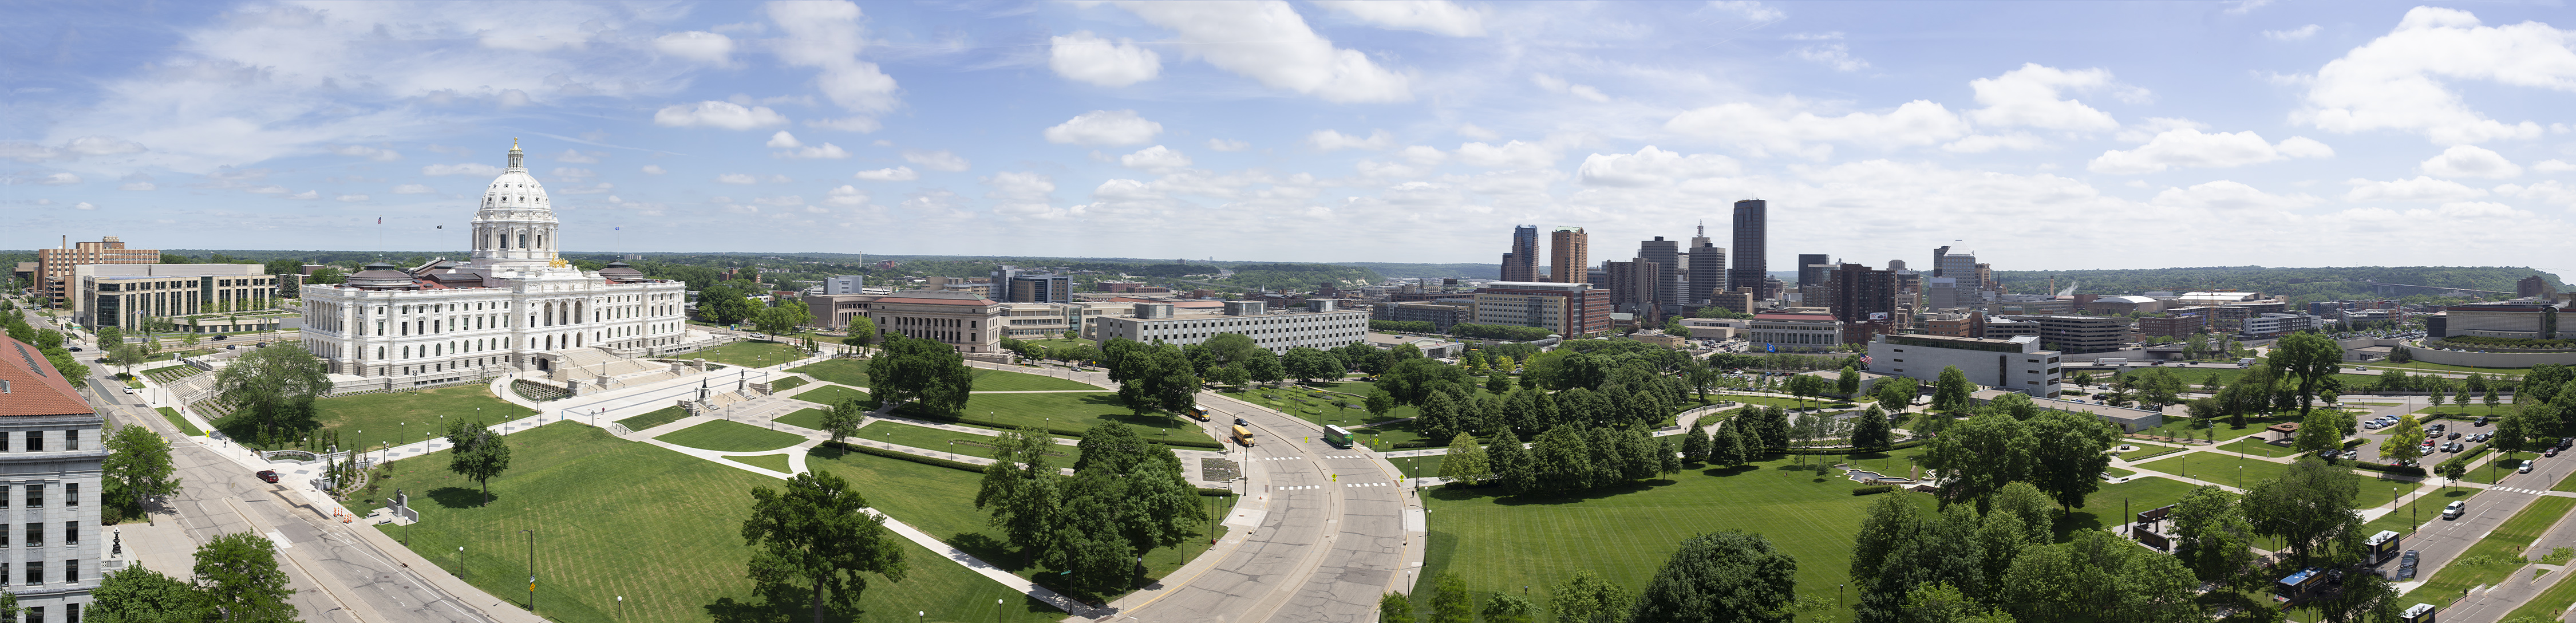 Capitol picture 10